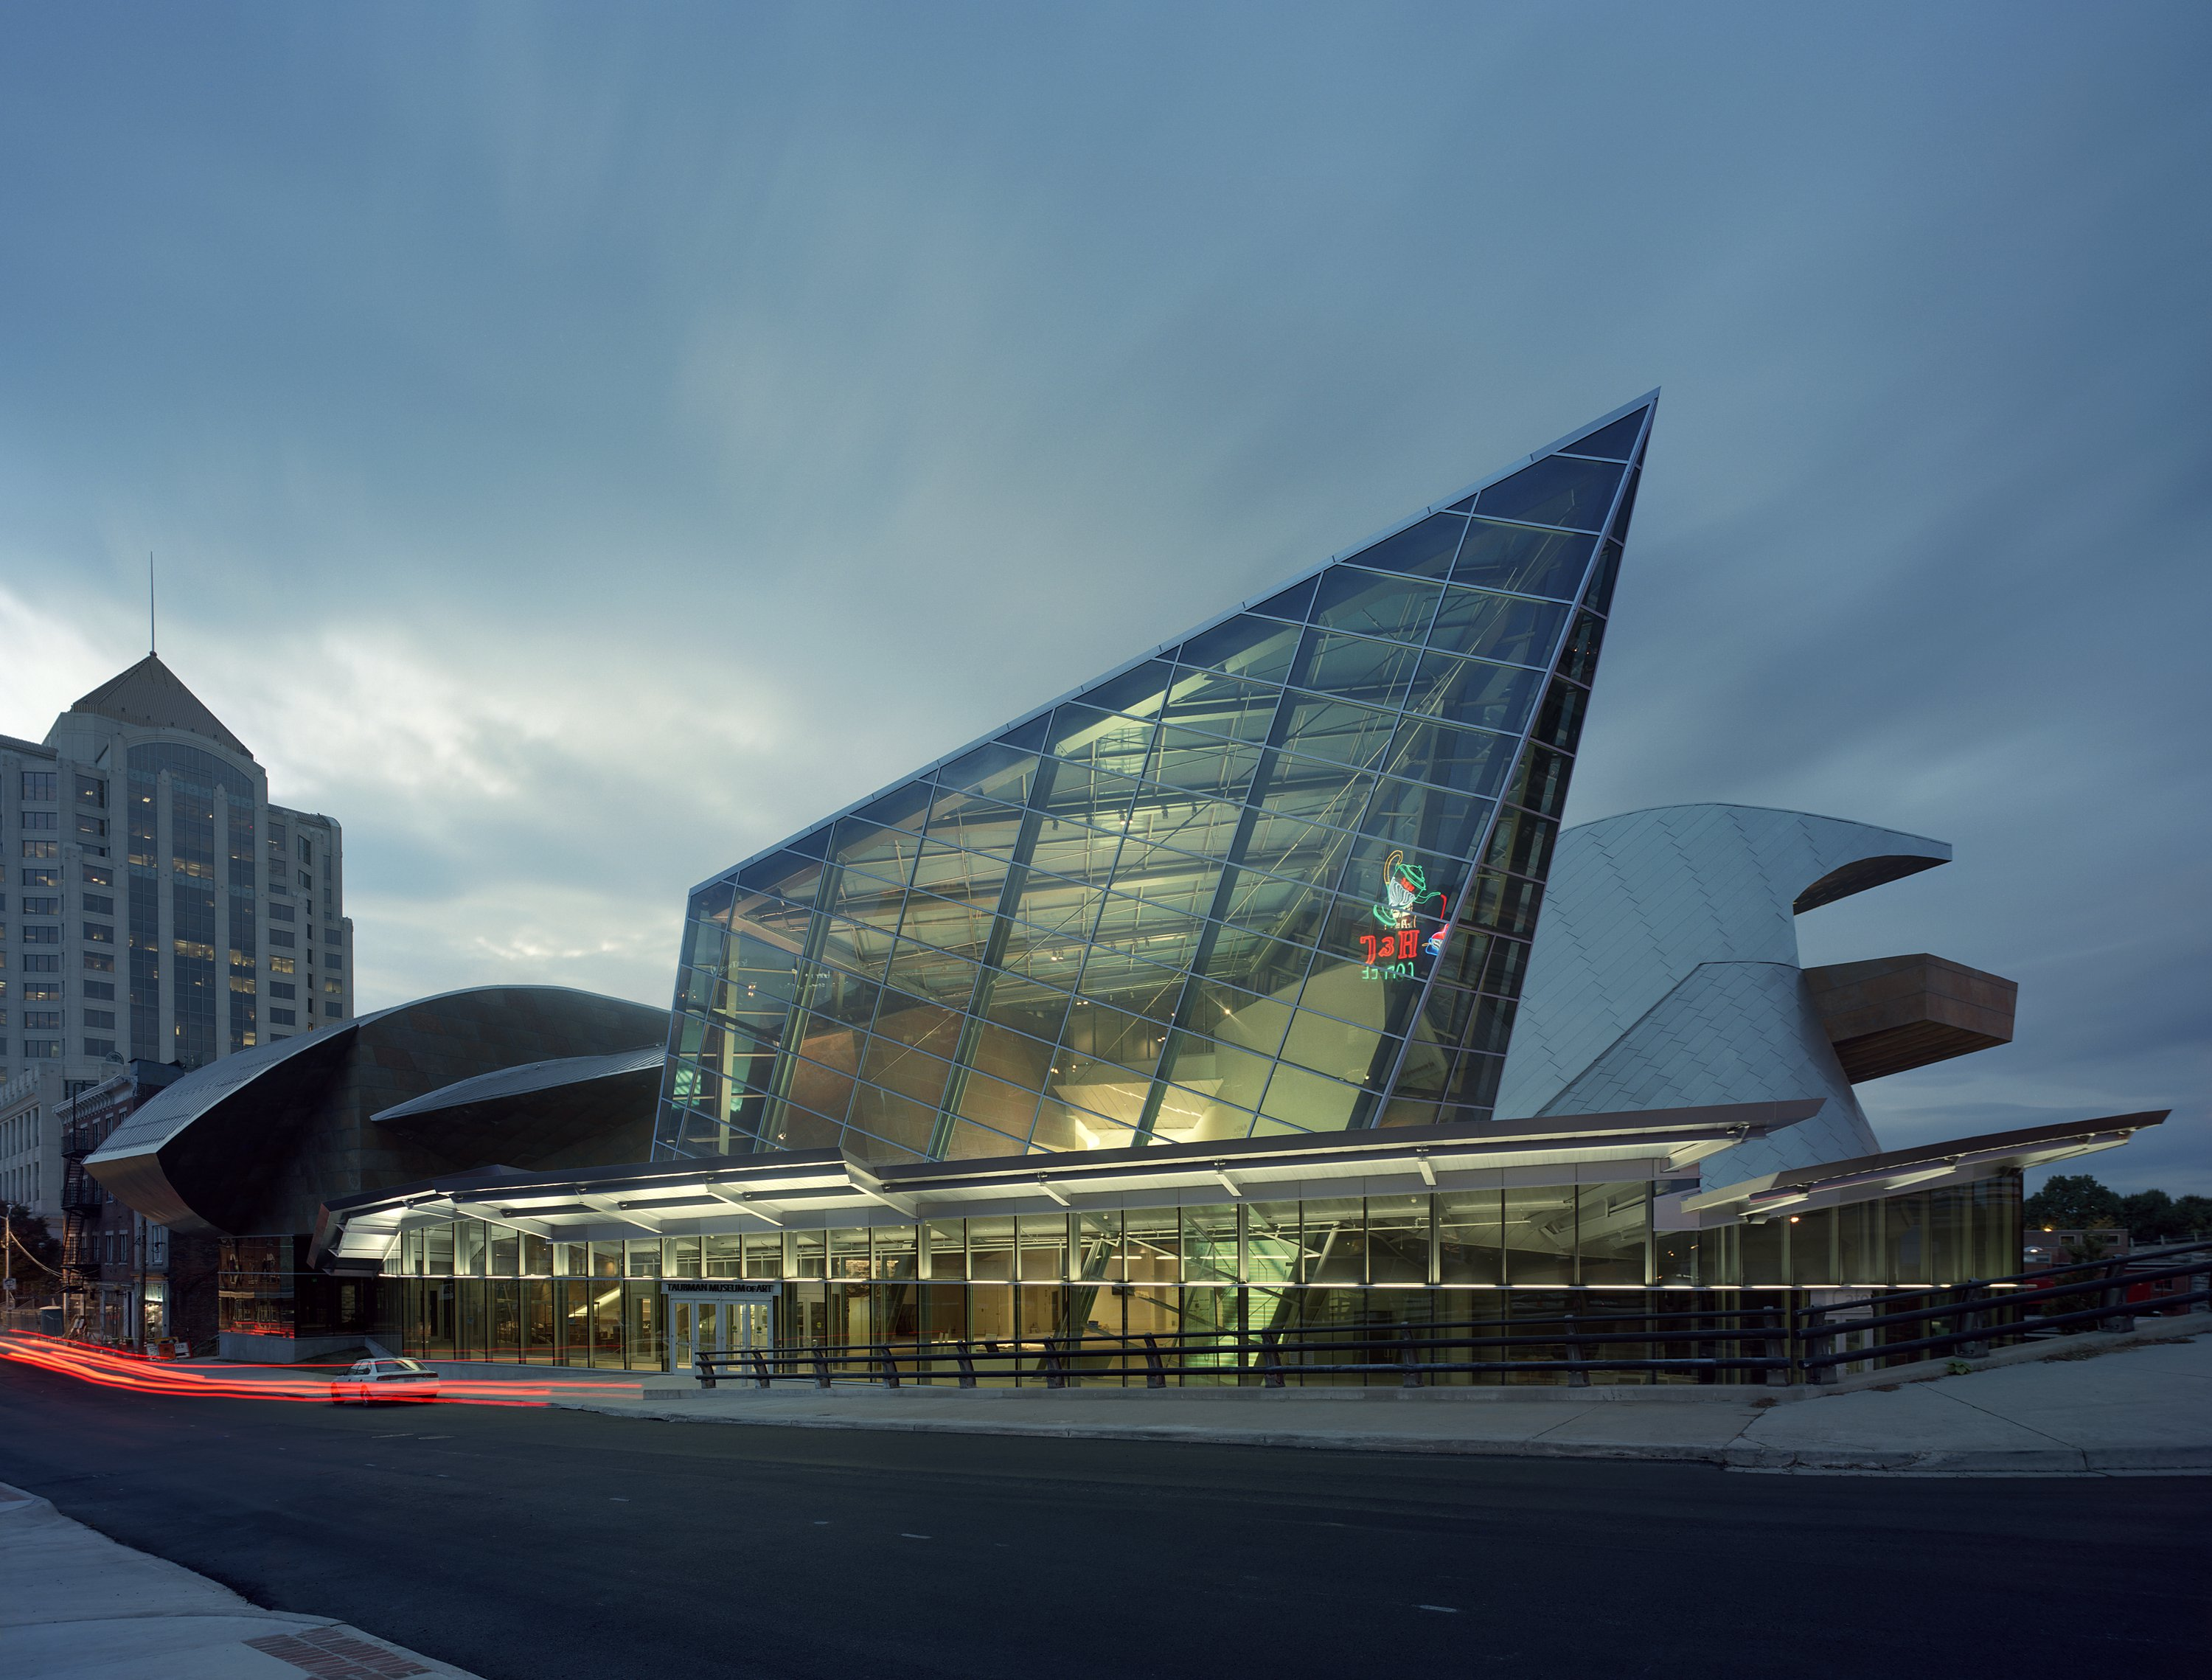 The Taubman Museum of Art has a world-class collection housed in an architecturally stunning building designed by Randall Stout. (Image: Courtesy the Taubman Museum of Art)